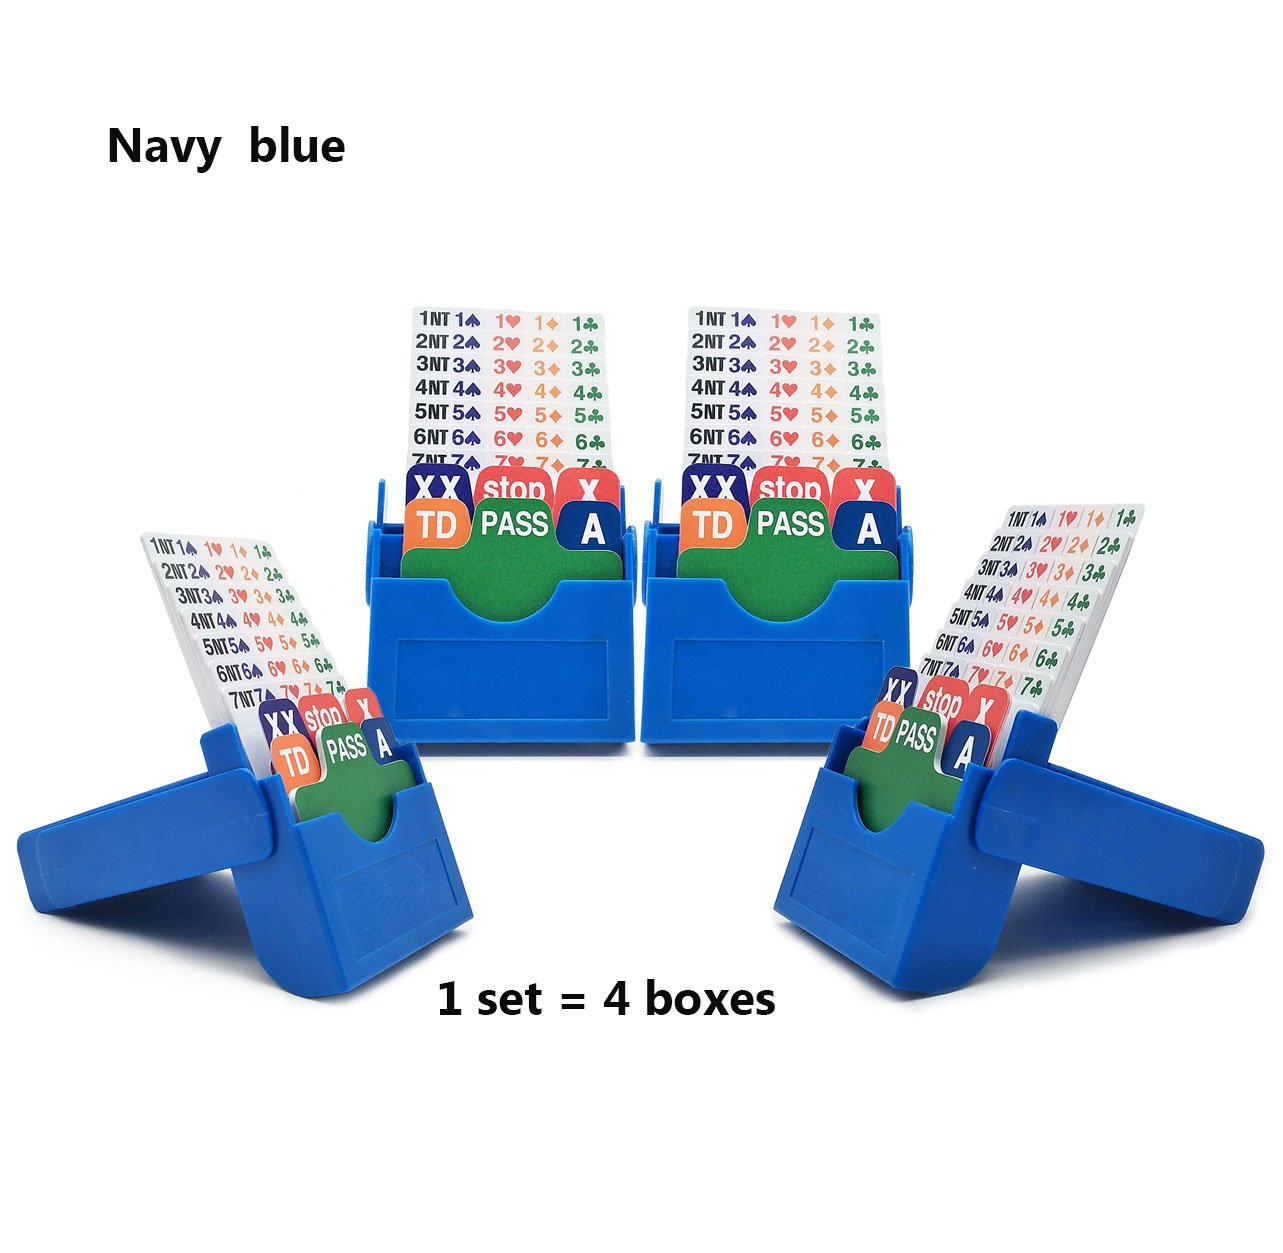 Bling Bling Folding Bridge Boxes with Plastic Cards Bidding Device Set of 4